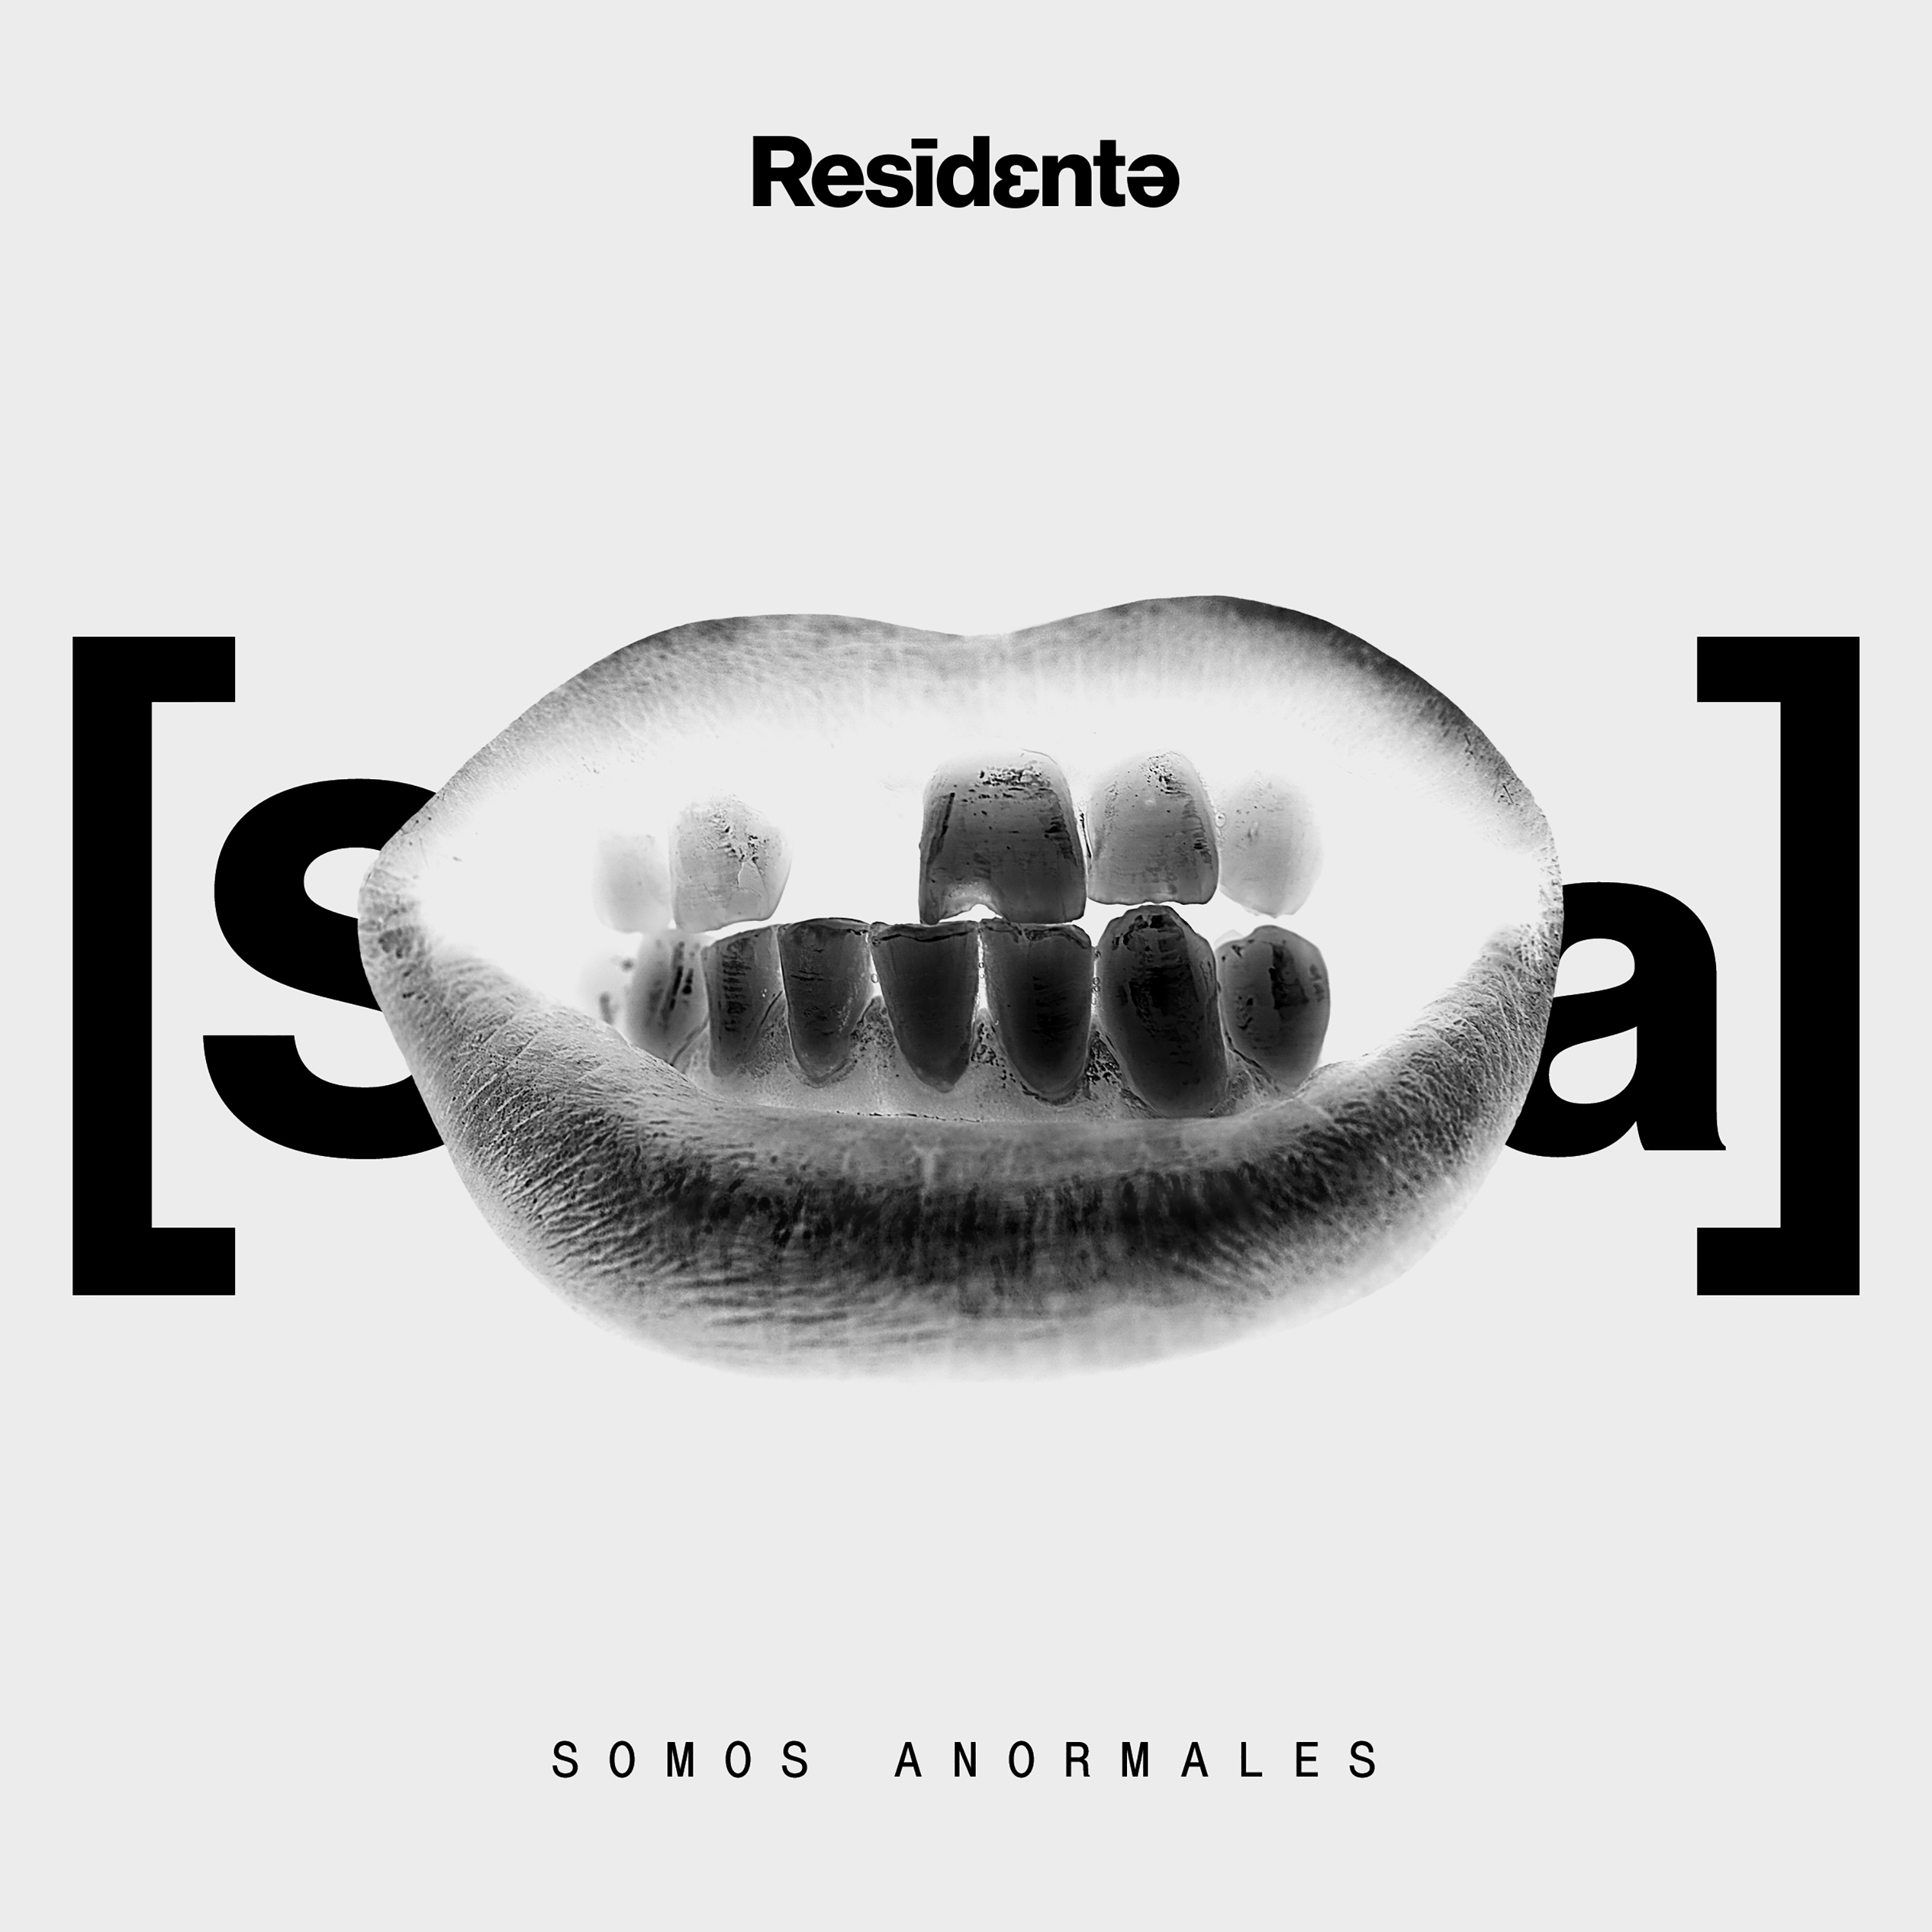 Residente_Somos Anormales_Single Cover